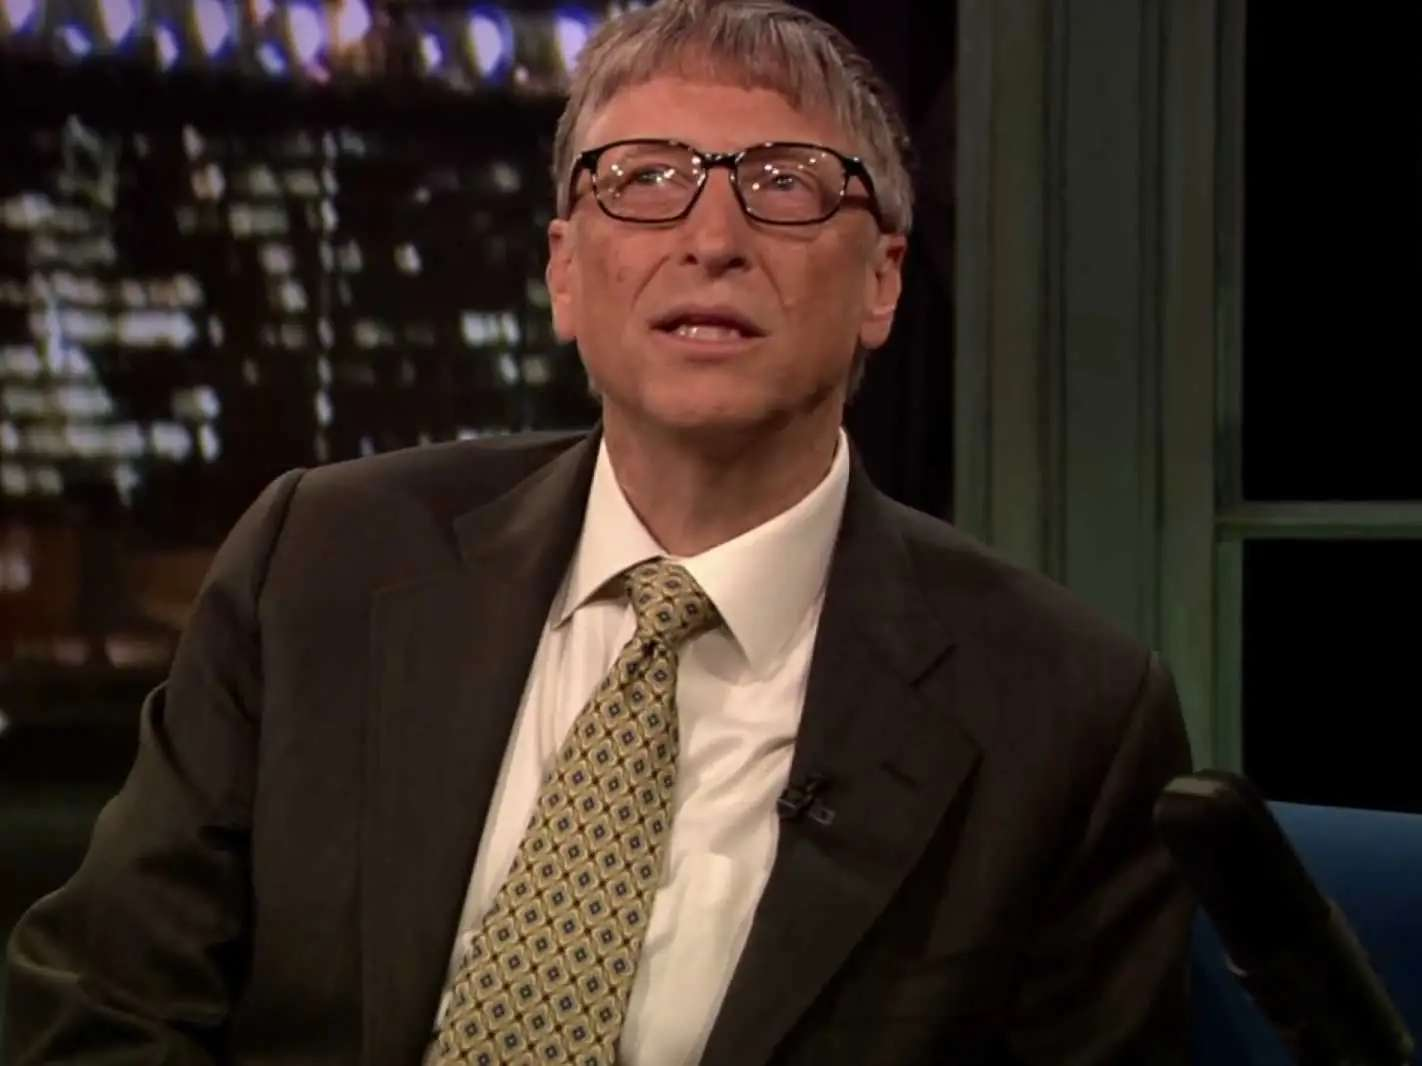 The richest American: Bill Gates